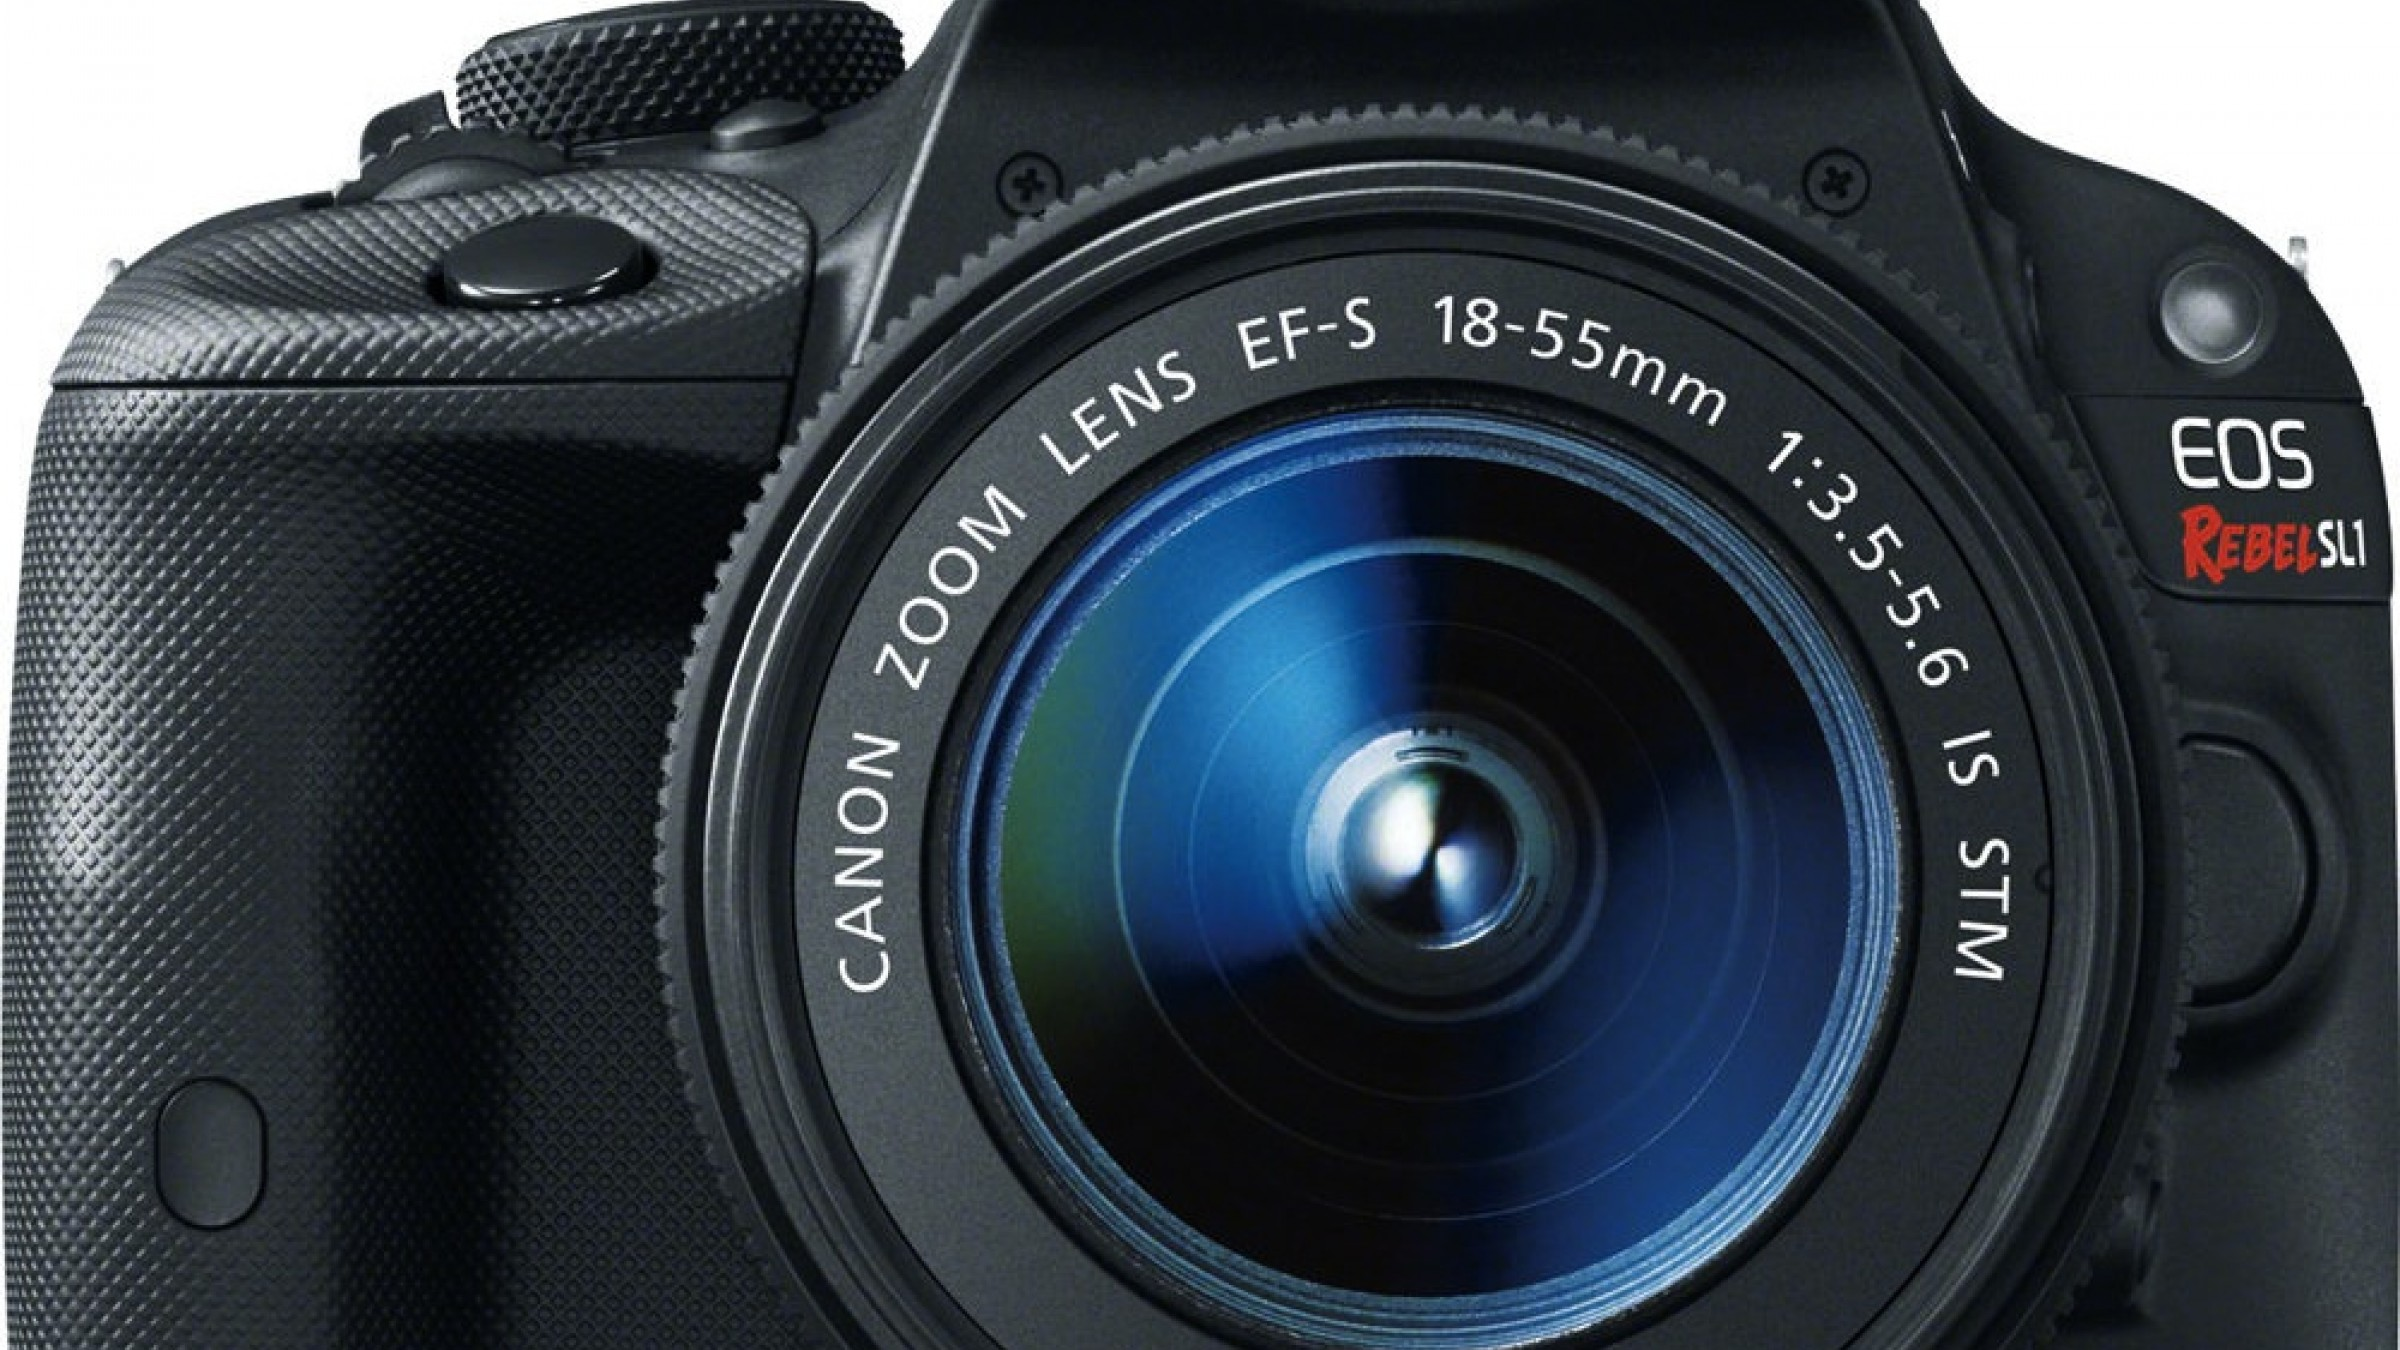 Canon Announces Two New DSLRs, the Incredibly Small and